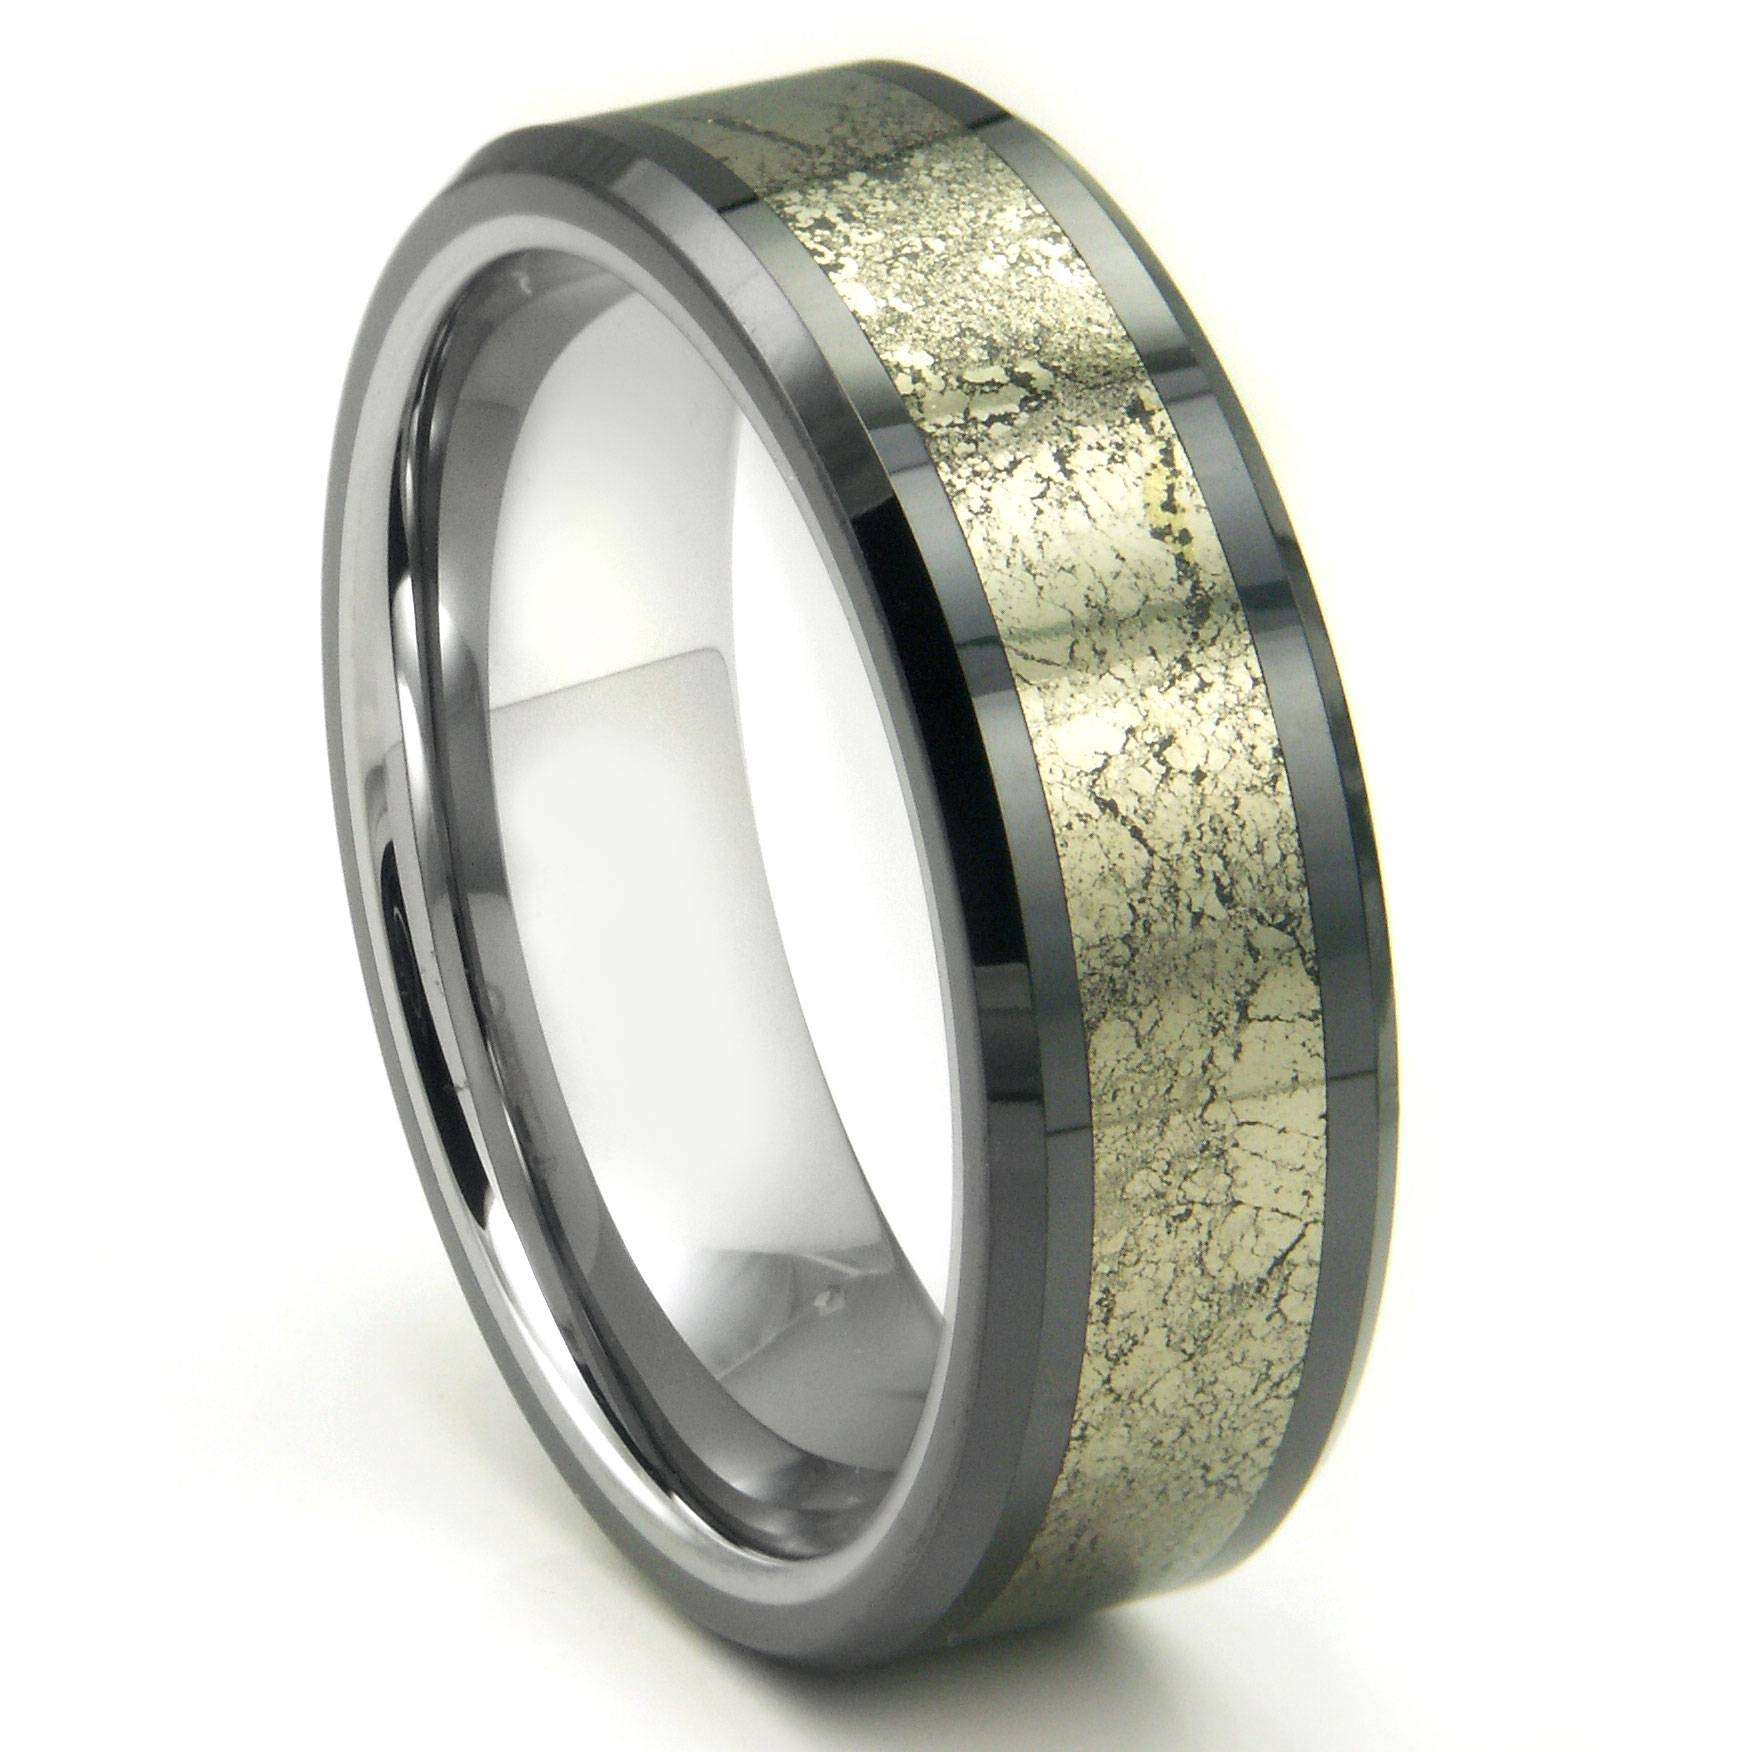 Wedding Rings : Tungsten Wedding Bands For Men Striking Design Of In Tungsten Carbide Wedding Bands Pros And Cons (View 15 of 15)